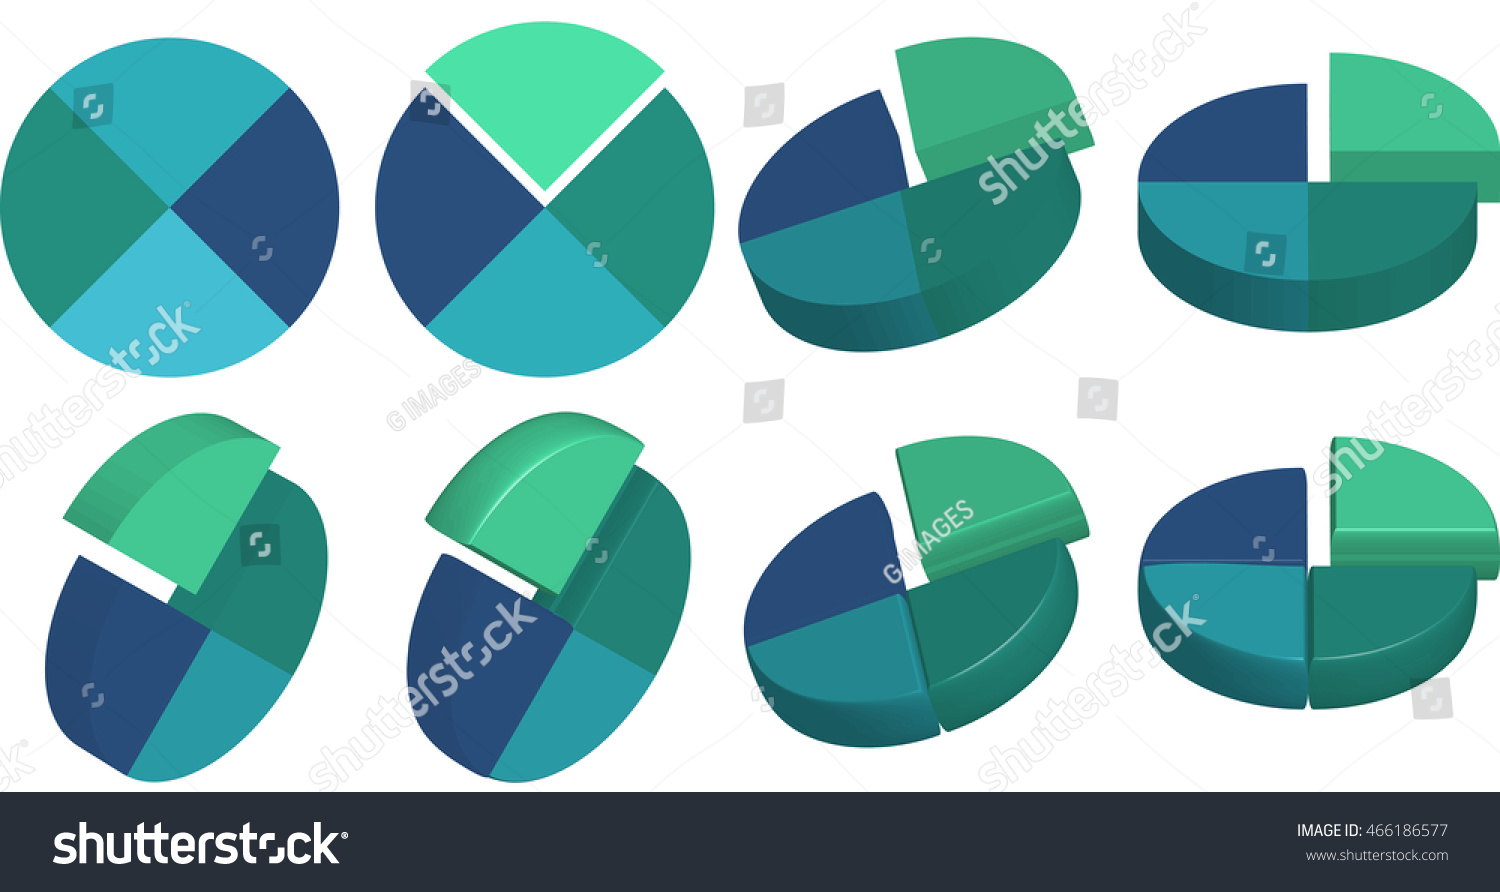 2d 3d pie chart elements presentations stock illustration 2d and 3d pie chart elements for presentations blue and teal color palette infographic nvjuhfo Image collections